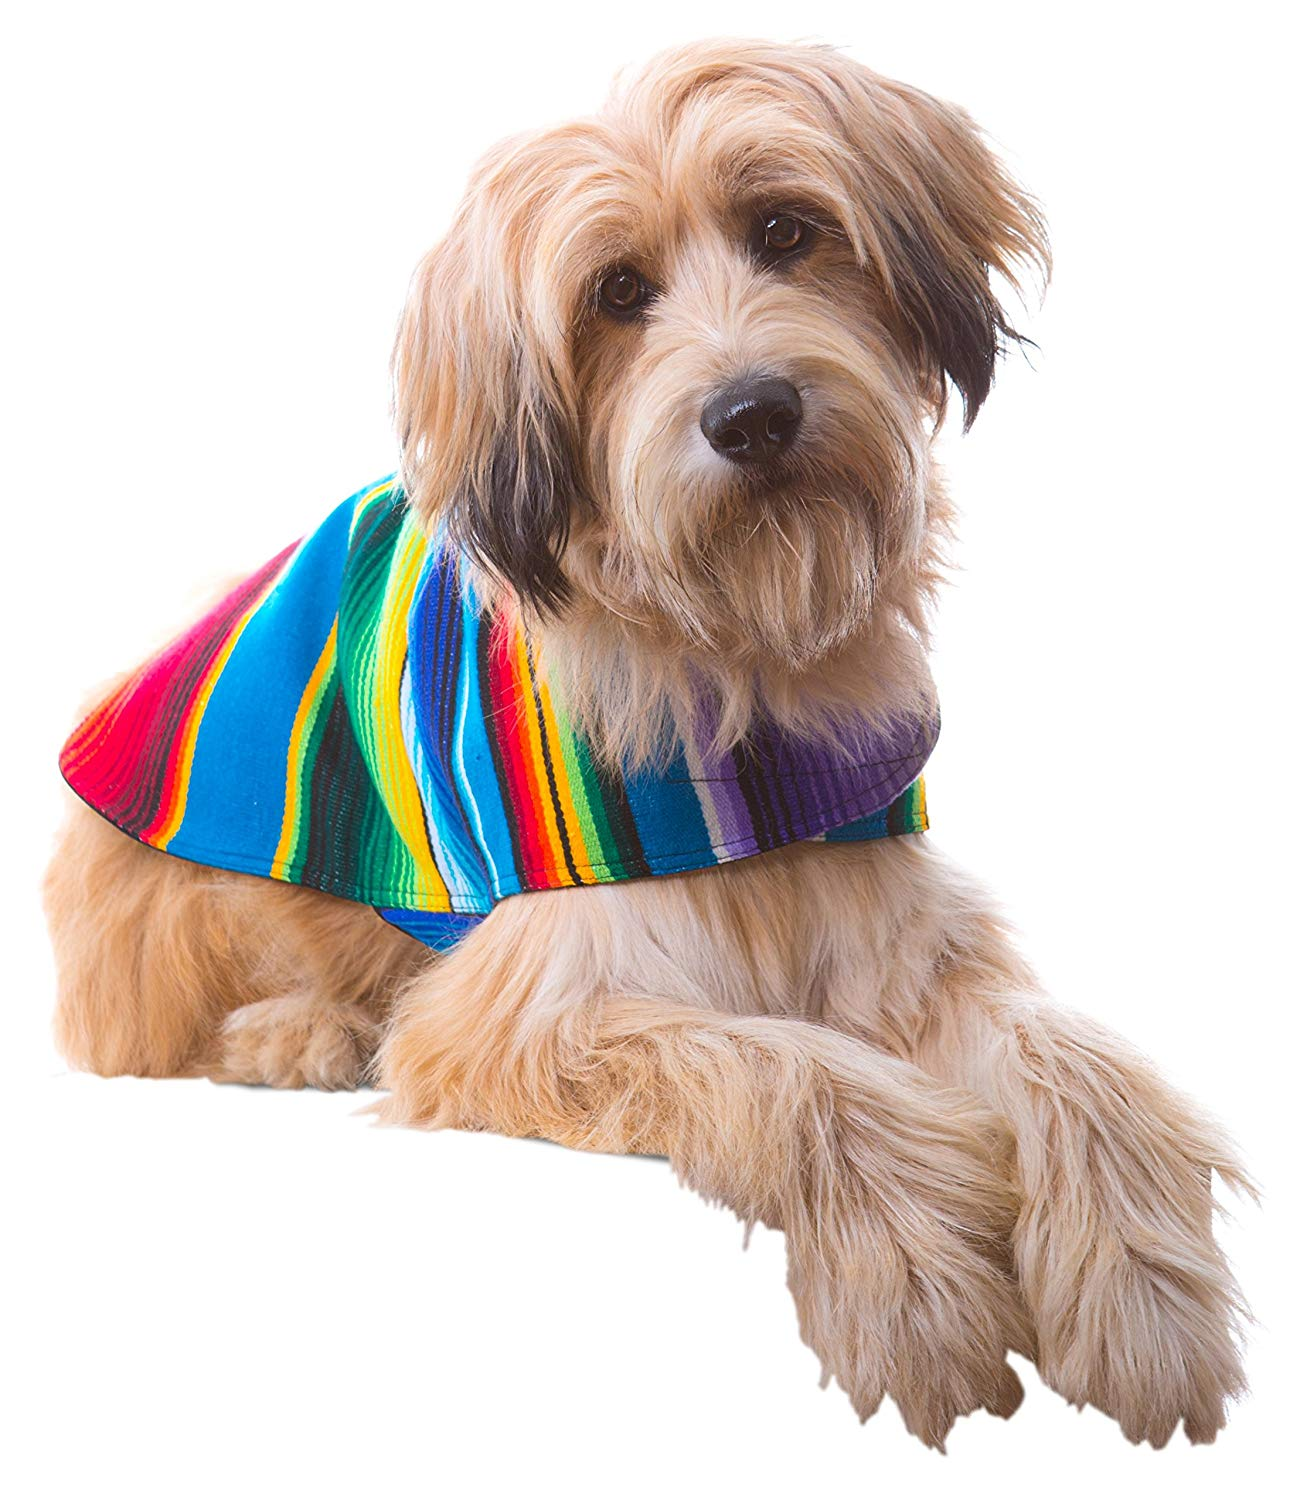 10 Dog Sweater Knitting Pattern 6 - Best top care with dogs